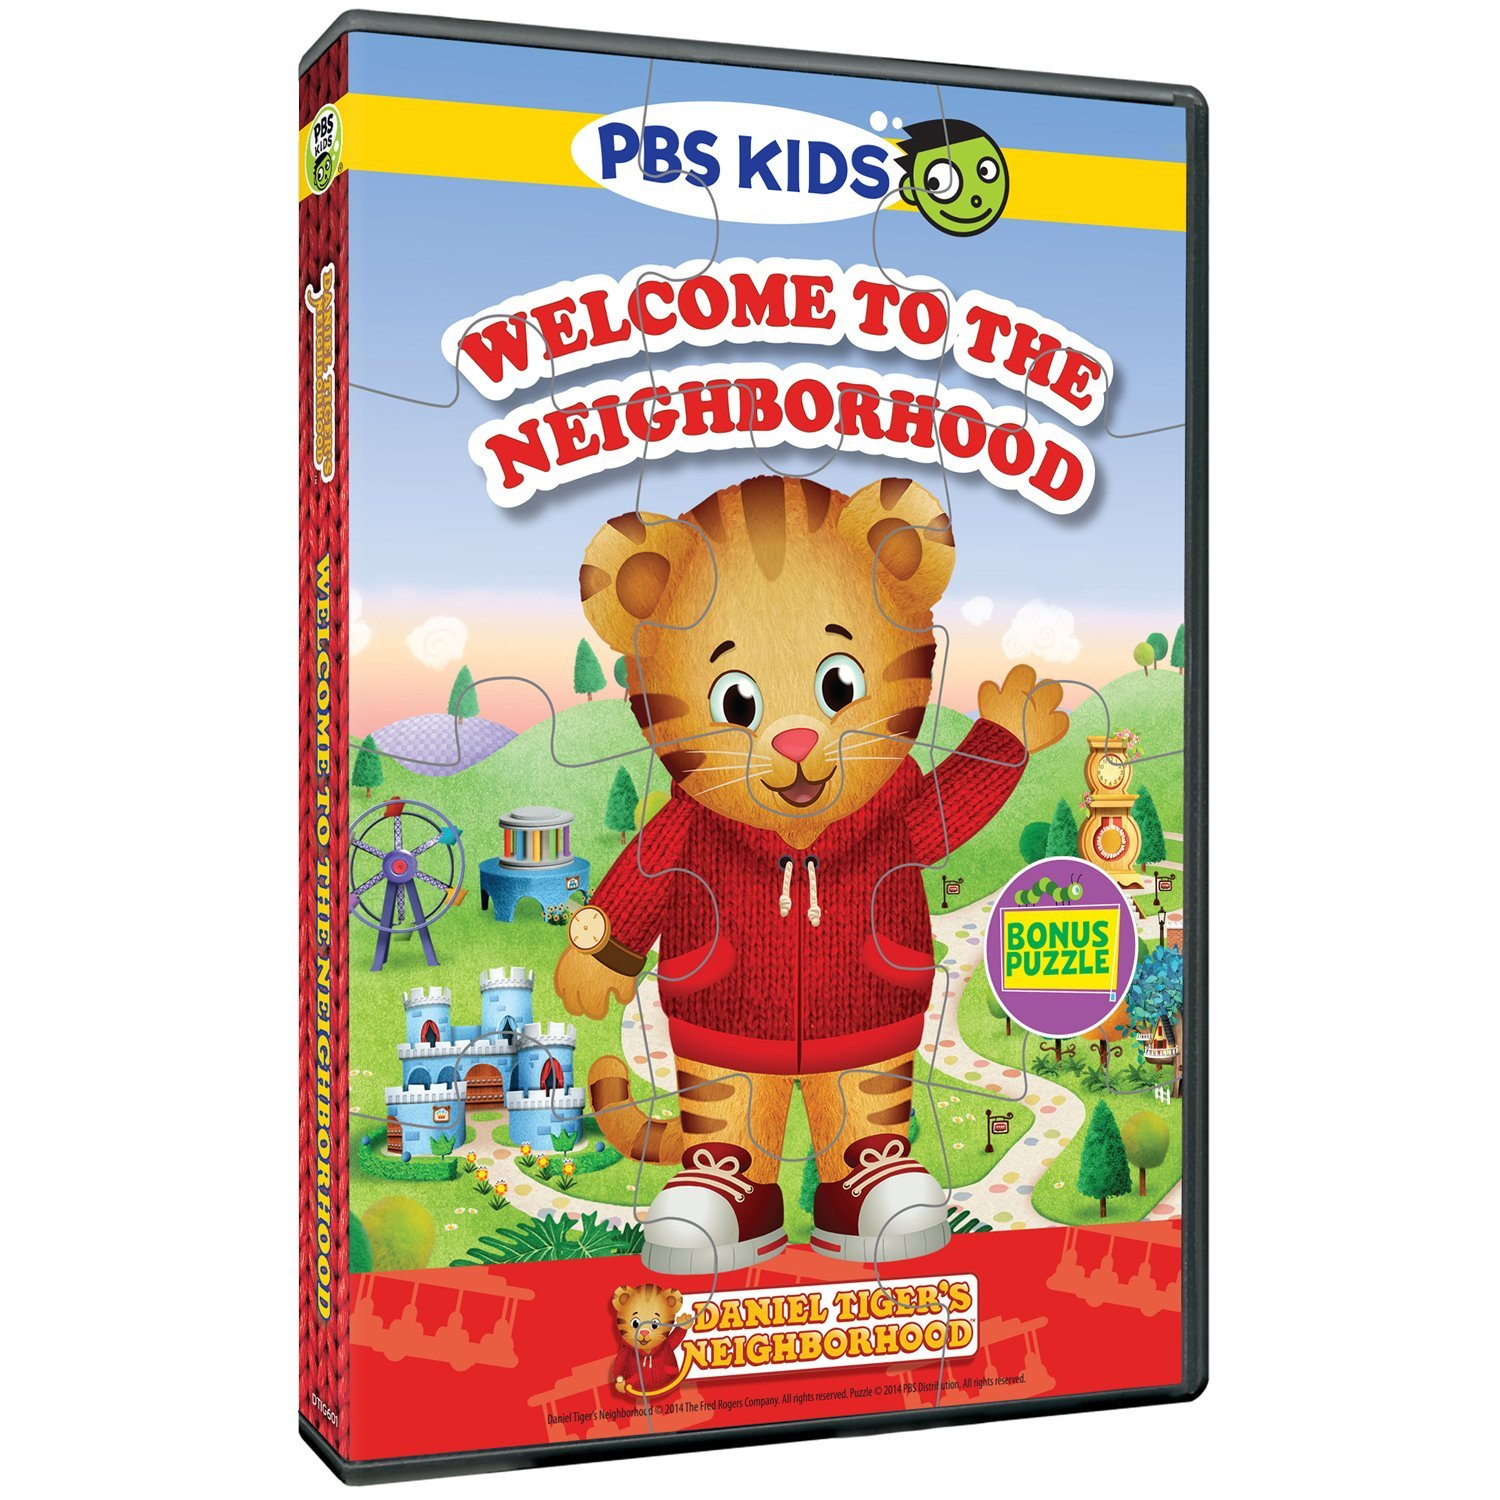 New To Dvd From Pbs Kids Daniel Tiger S Neighborhood And